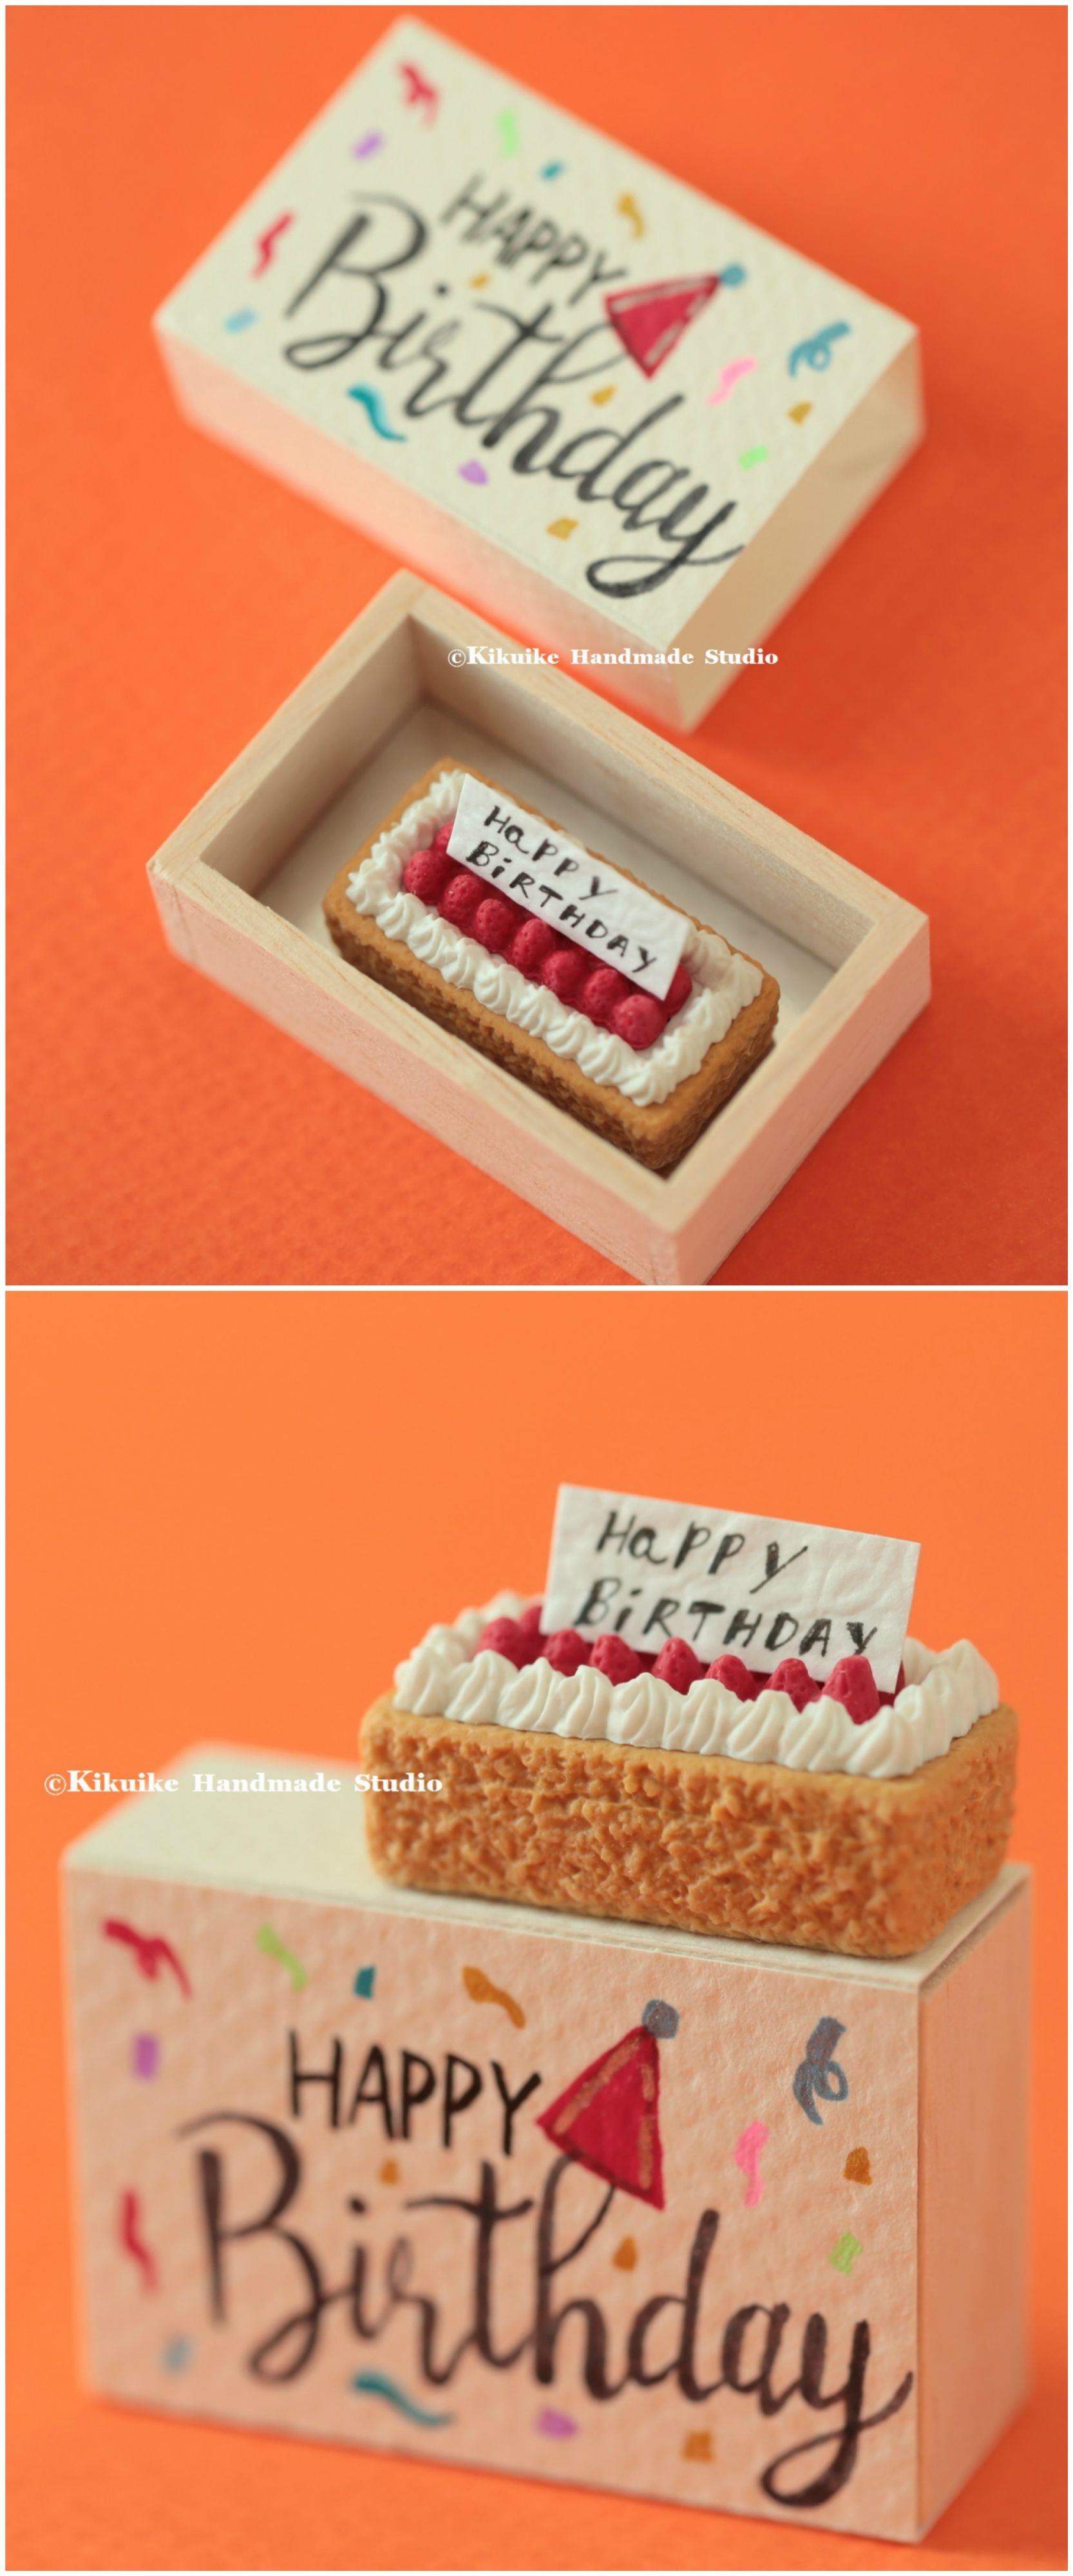 Happy Birthday Matchboxbirthday CardMiniatures Matchbox CardValentines GiftFunny Love